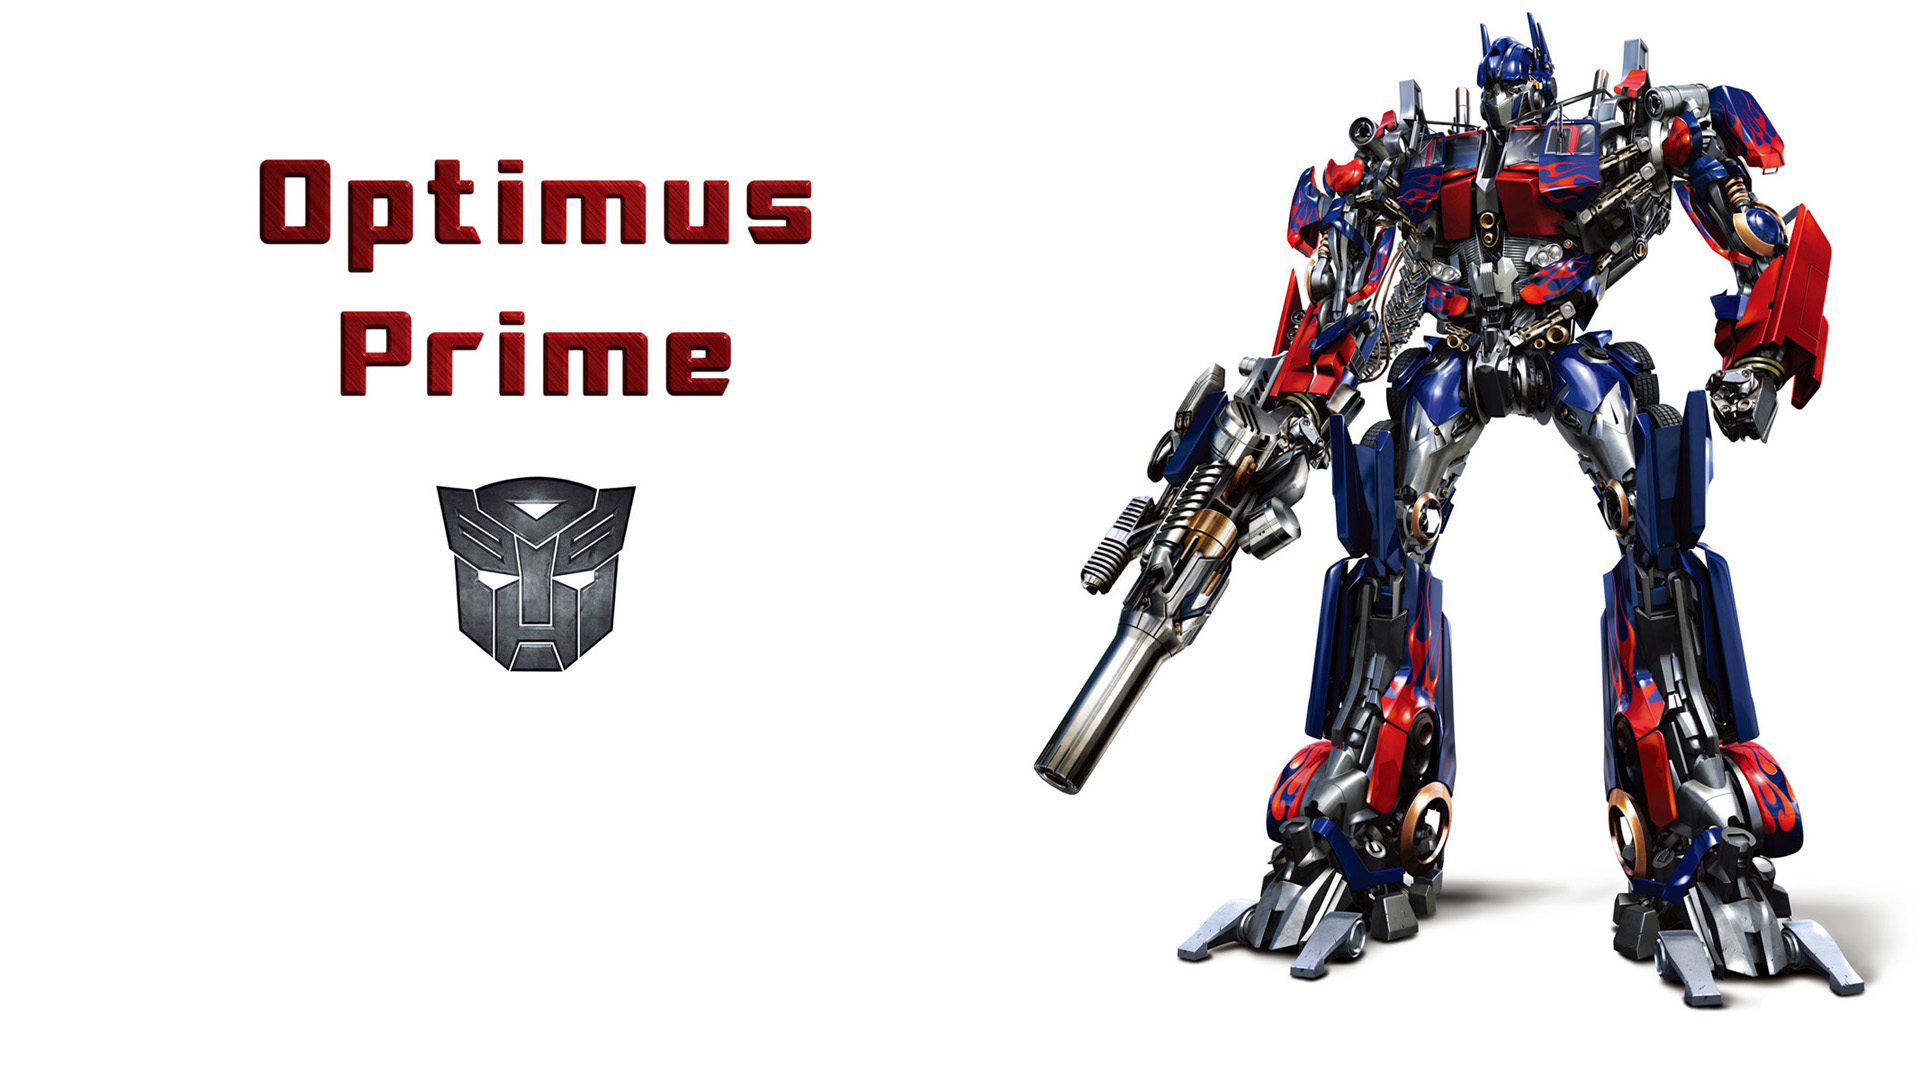 Transformers optimus prime clipart.